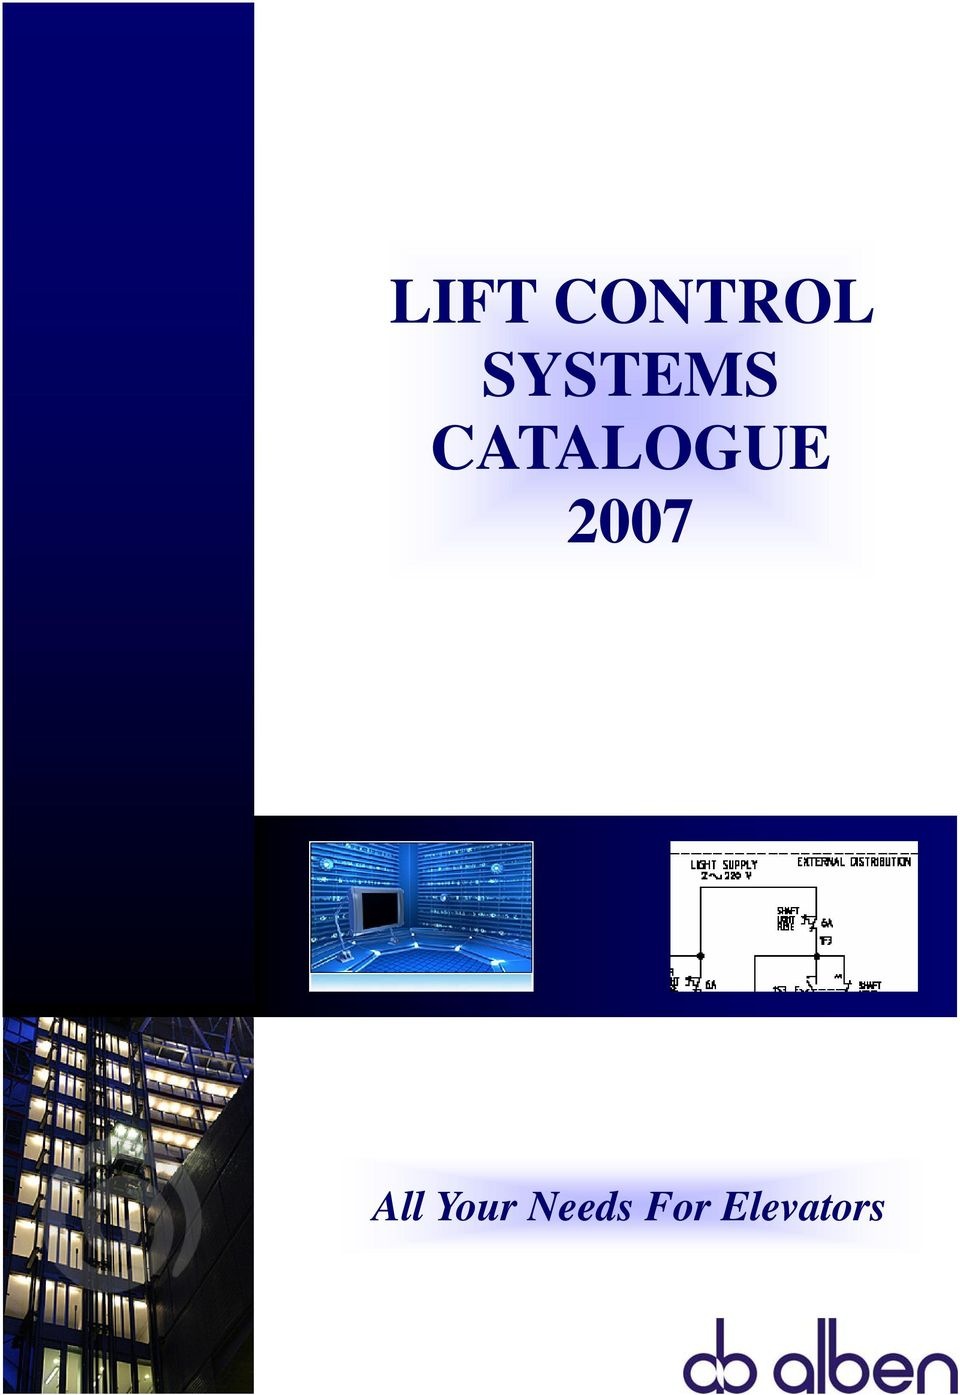 CATALOGUE 2007